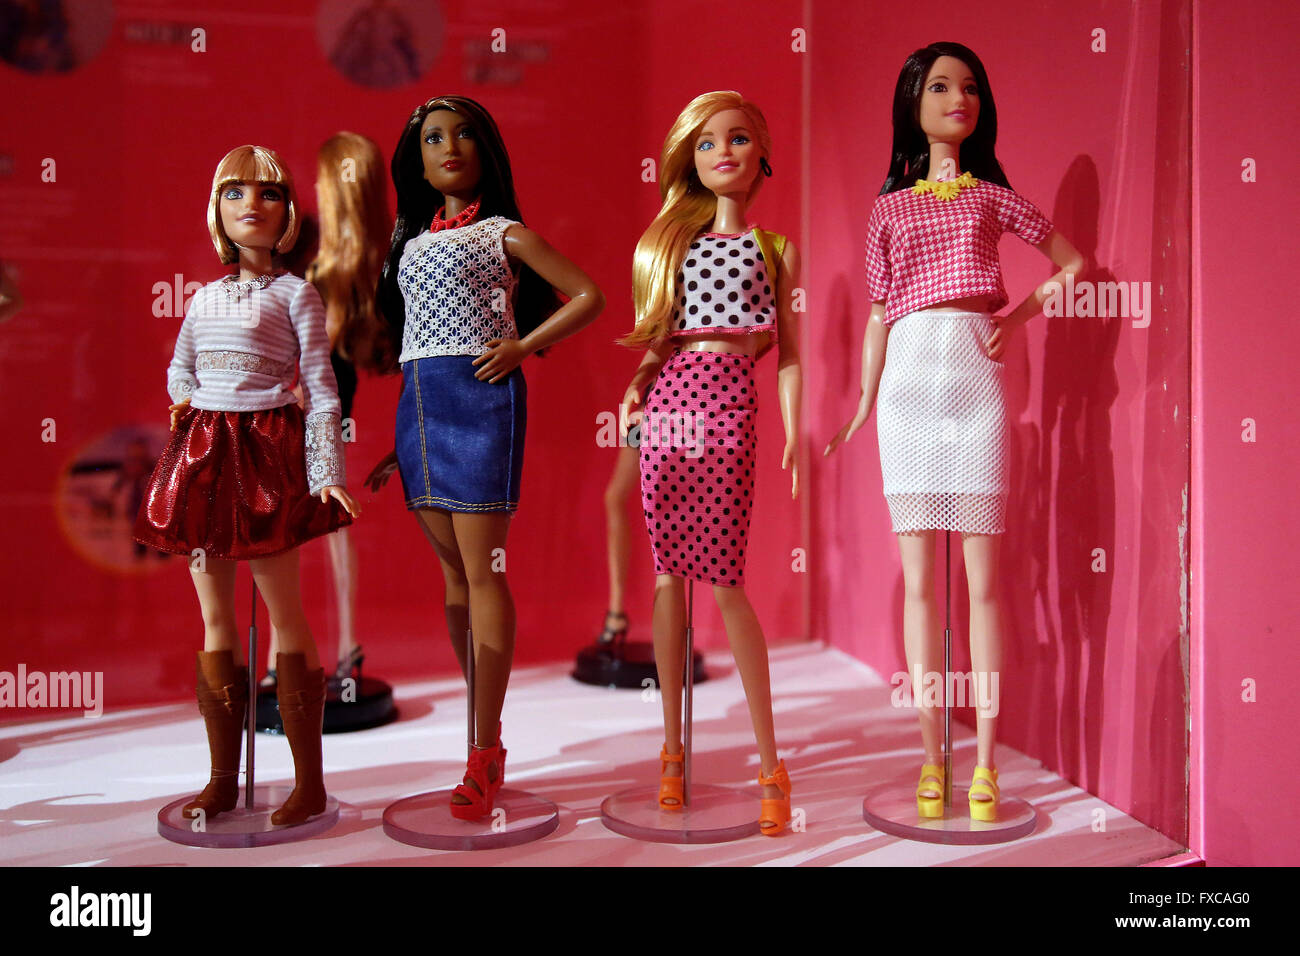 Rome, Italy. 14th April, 2016. Four 'politically correct' Barbies, a small one, an oversize, a 'normal' - Stock Image